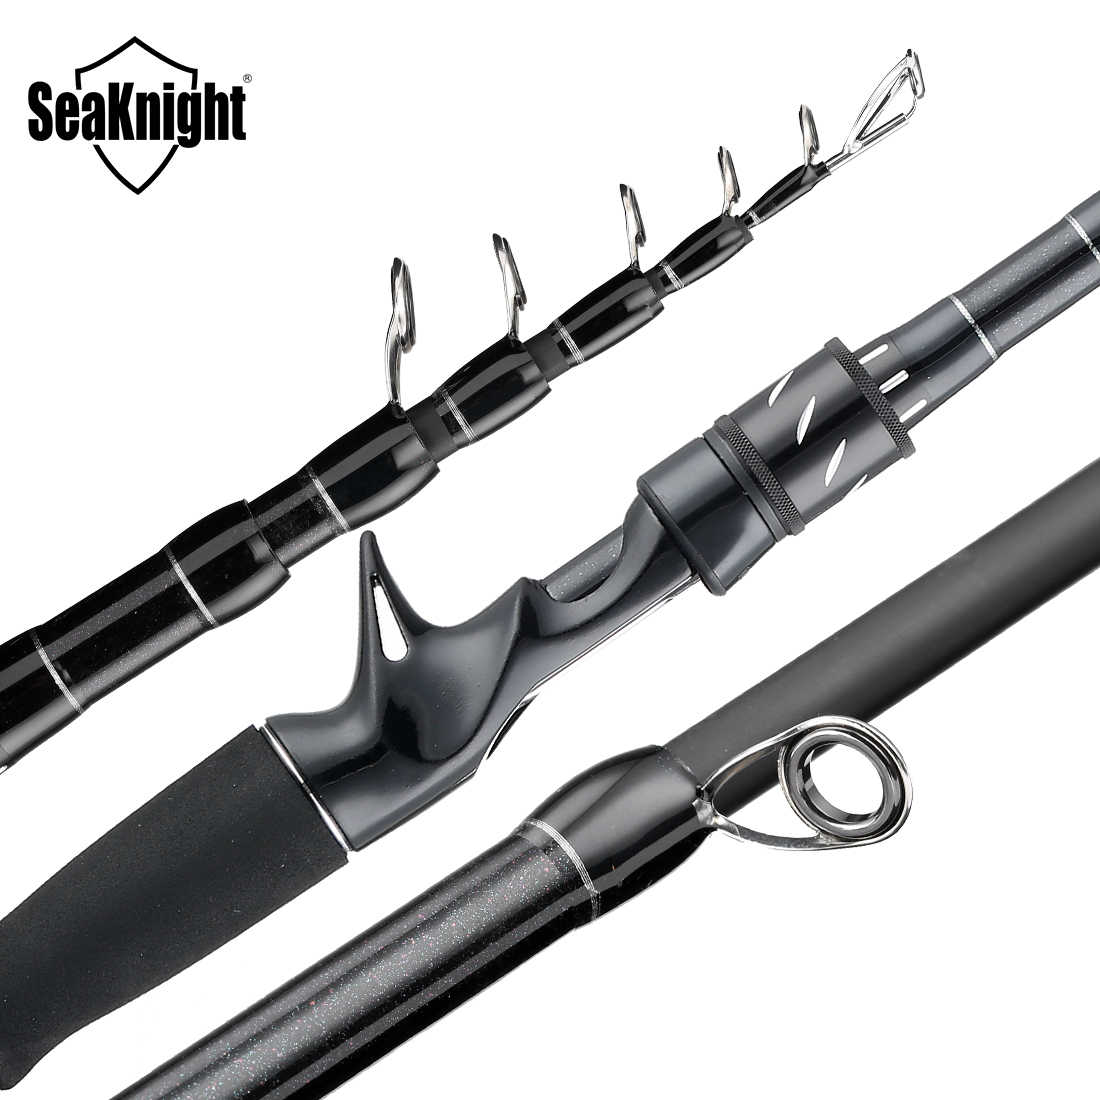 SeaKnight 2019 Sange II M MH 2.1M 2.4M Carbon Rod ตกปลา Telescopic Rod Casting Rod เดินทาง Rod 7-25g 8-18LB ตกปลา